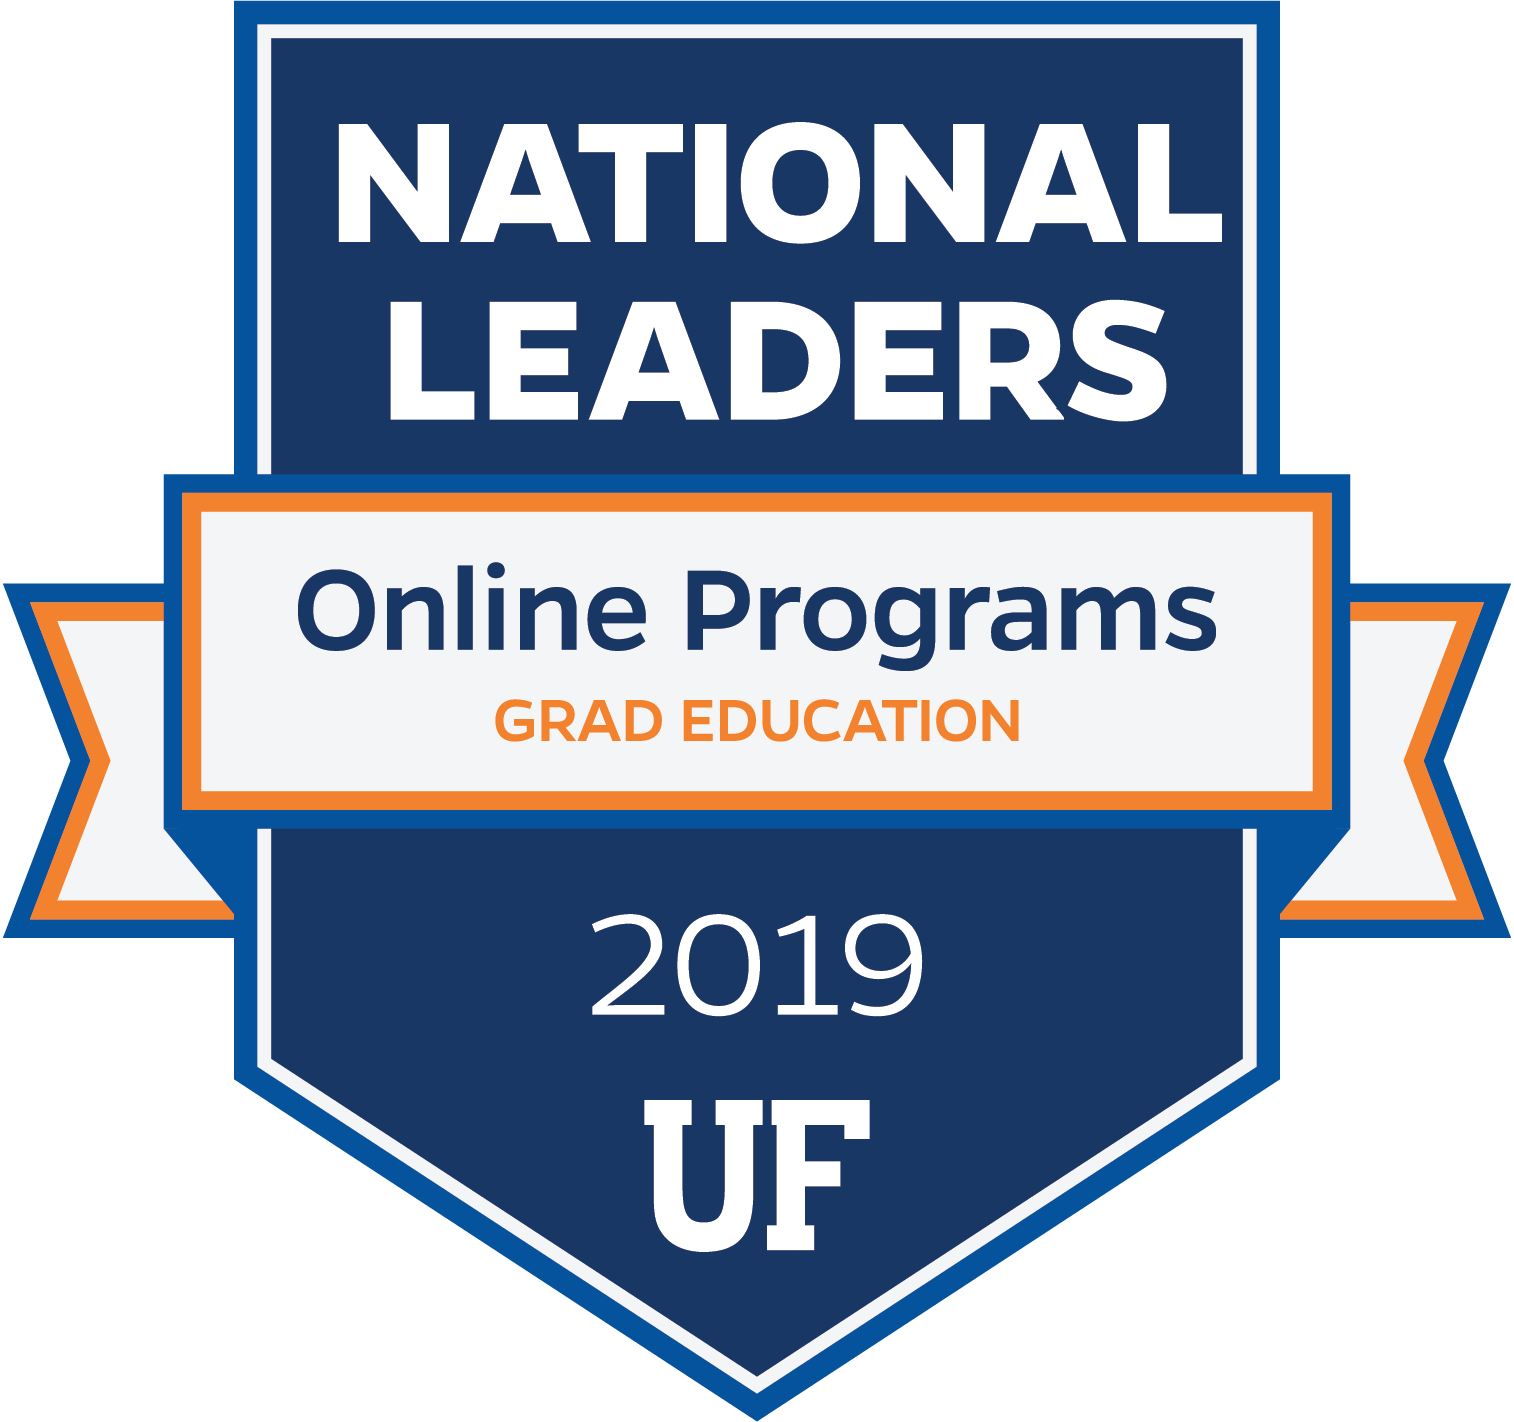 National Leaders in Online Grad Education Programs for 2019